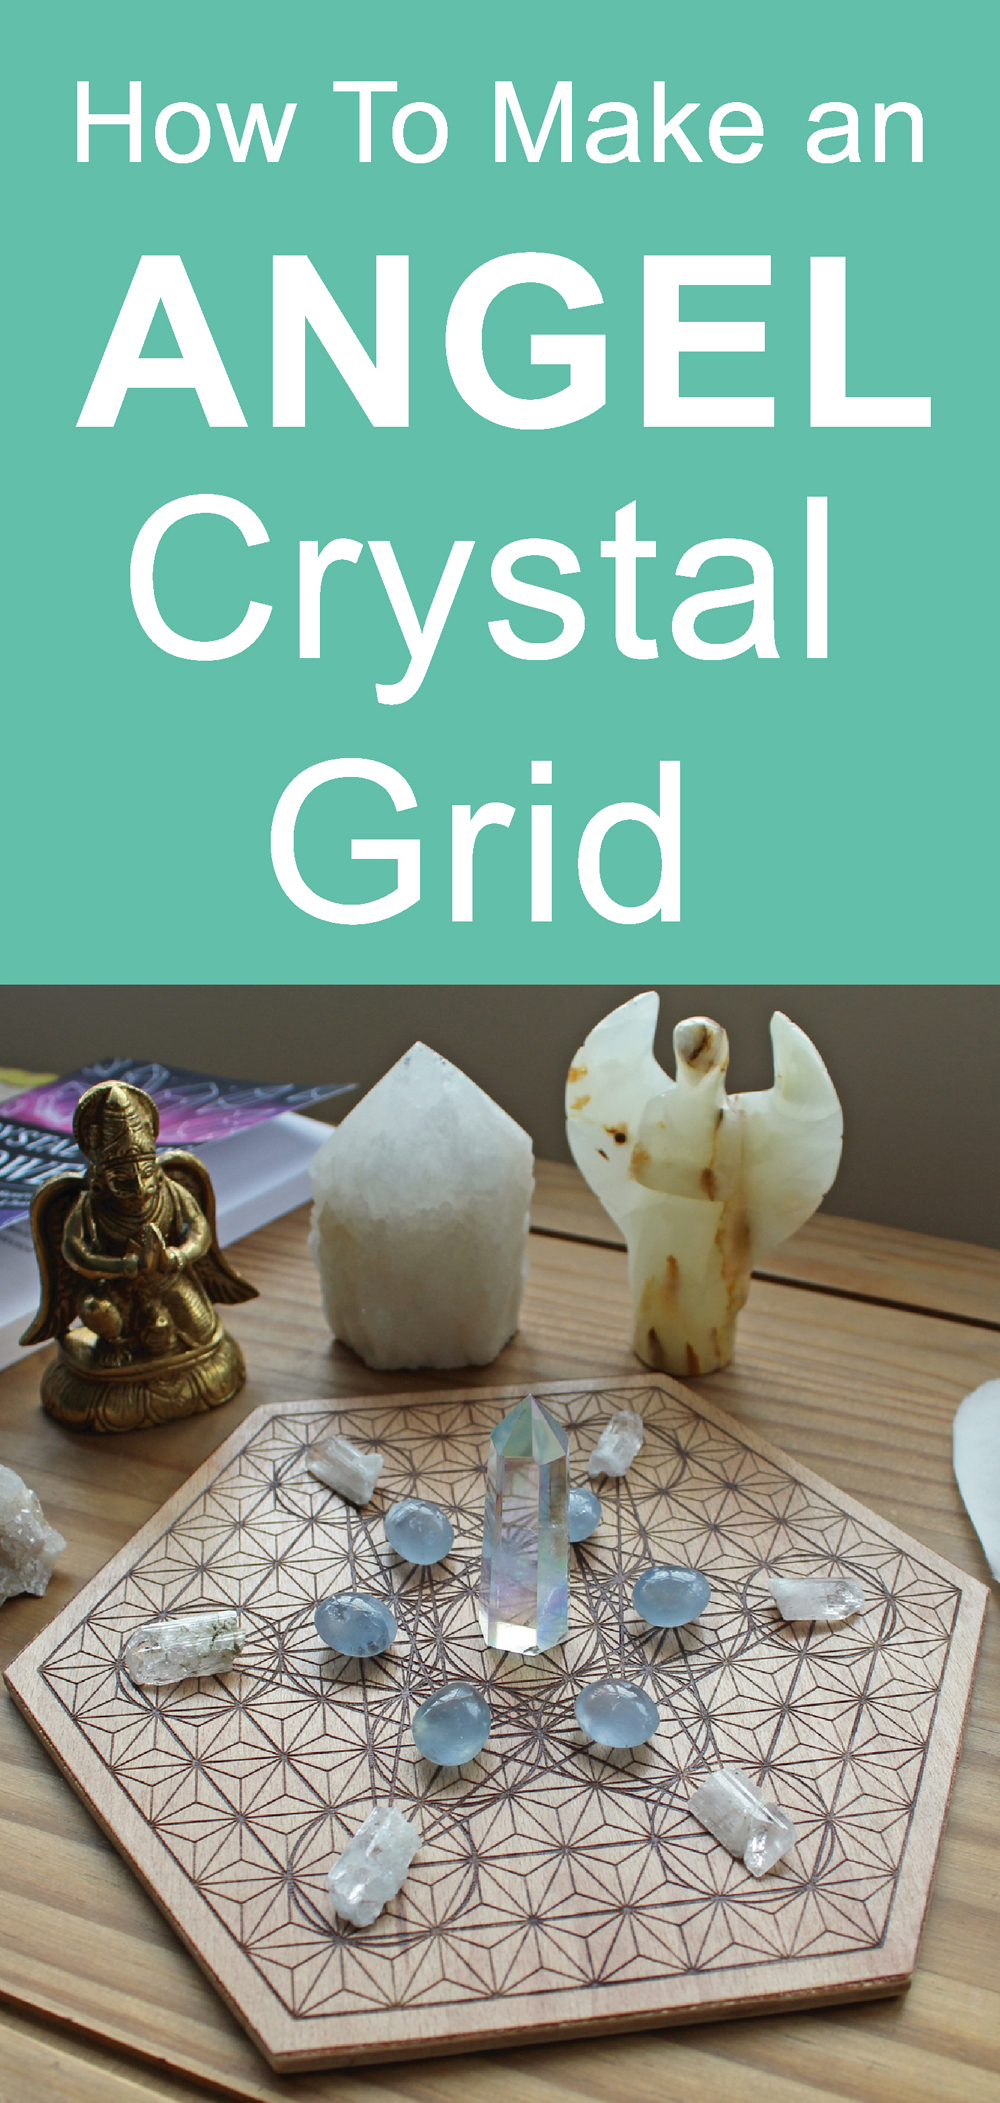 Crystal Grid to connect with angels